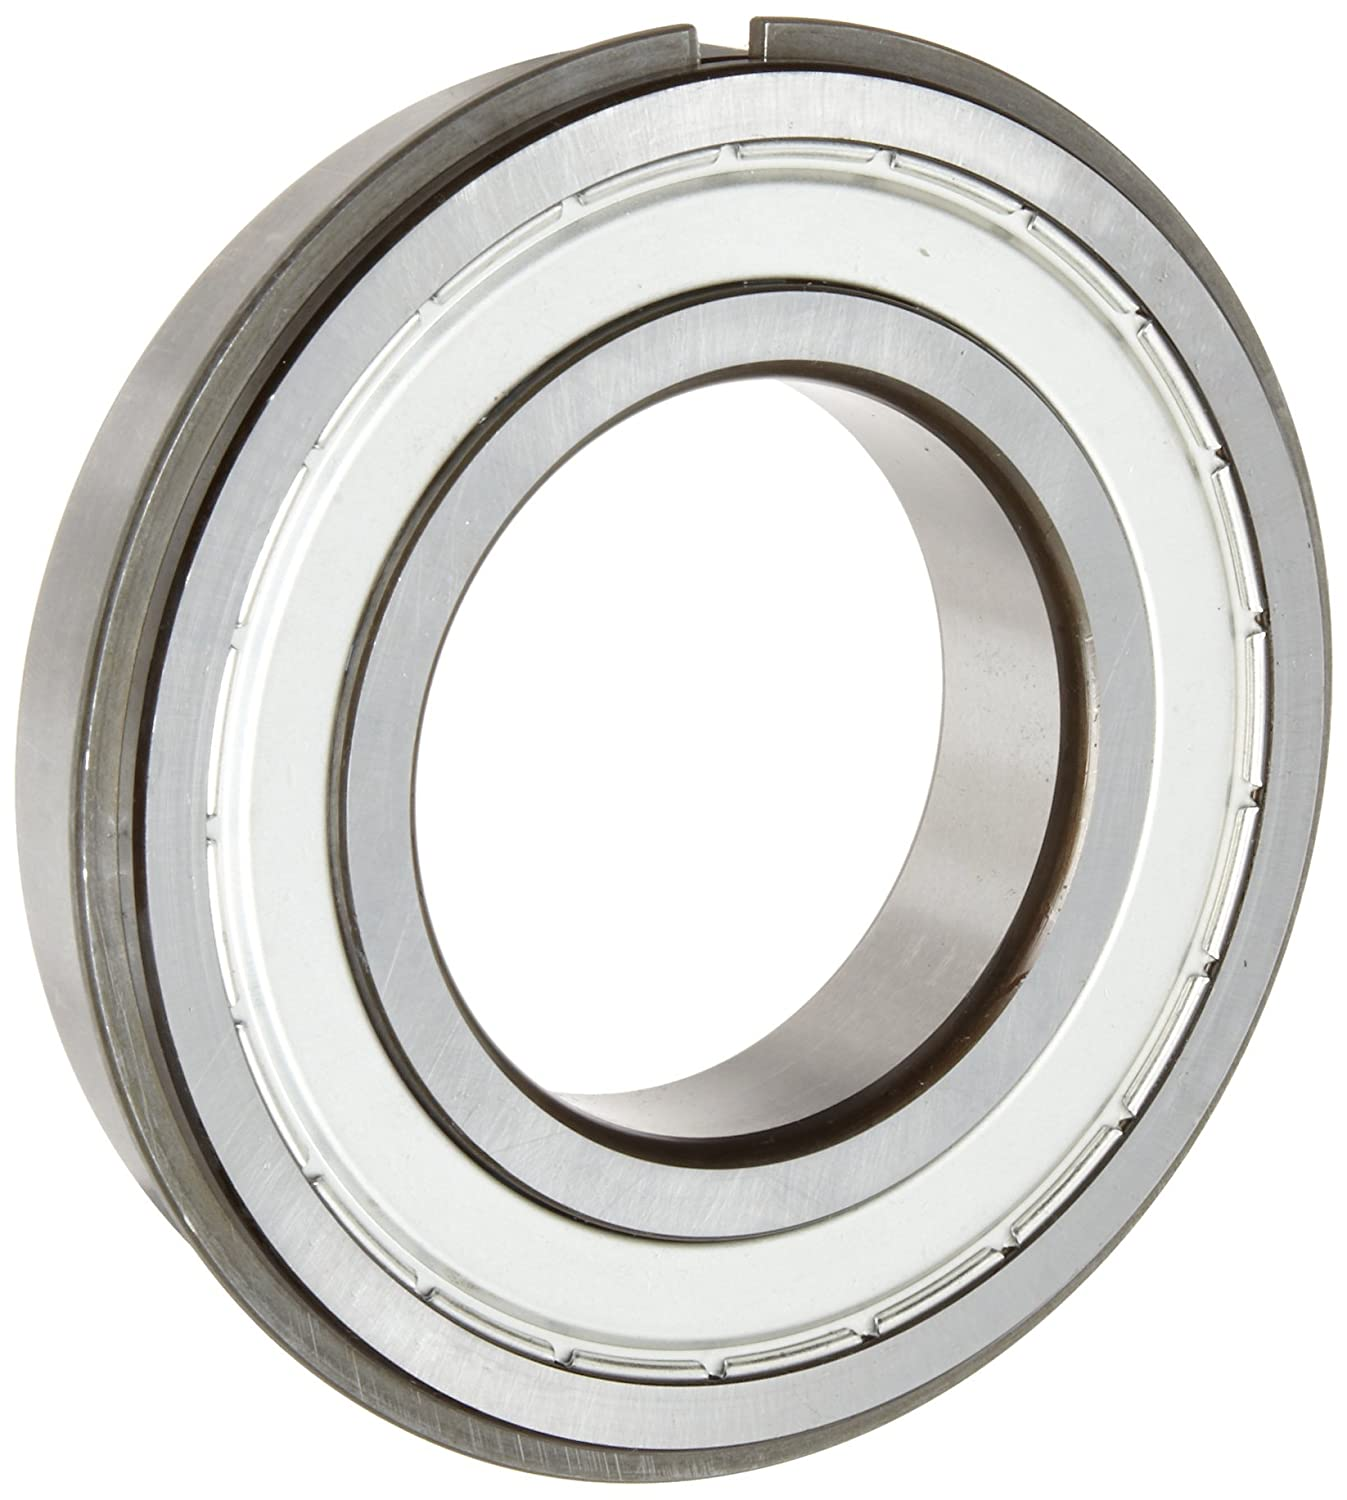 ORS 6006 ZZ NR C3 Deep Groove Ball Bearing, Single Row, Double Shielded, Snap Ring, Steel Cage, C3 Clearance, ABEC 1 Precision, 30mm Bore, 55mm OD, 13mm Width ORS Bearings Inc. 6006ZZ NR C3 G93